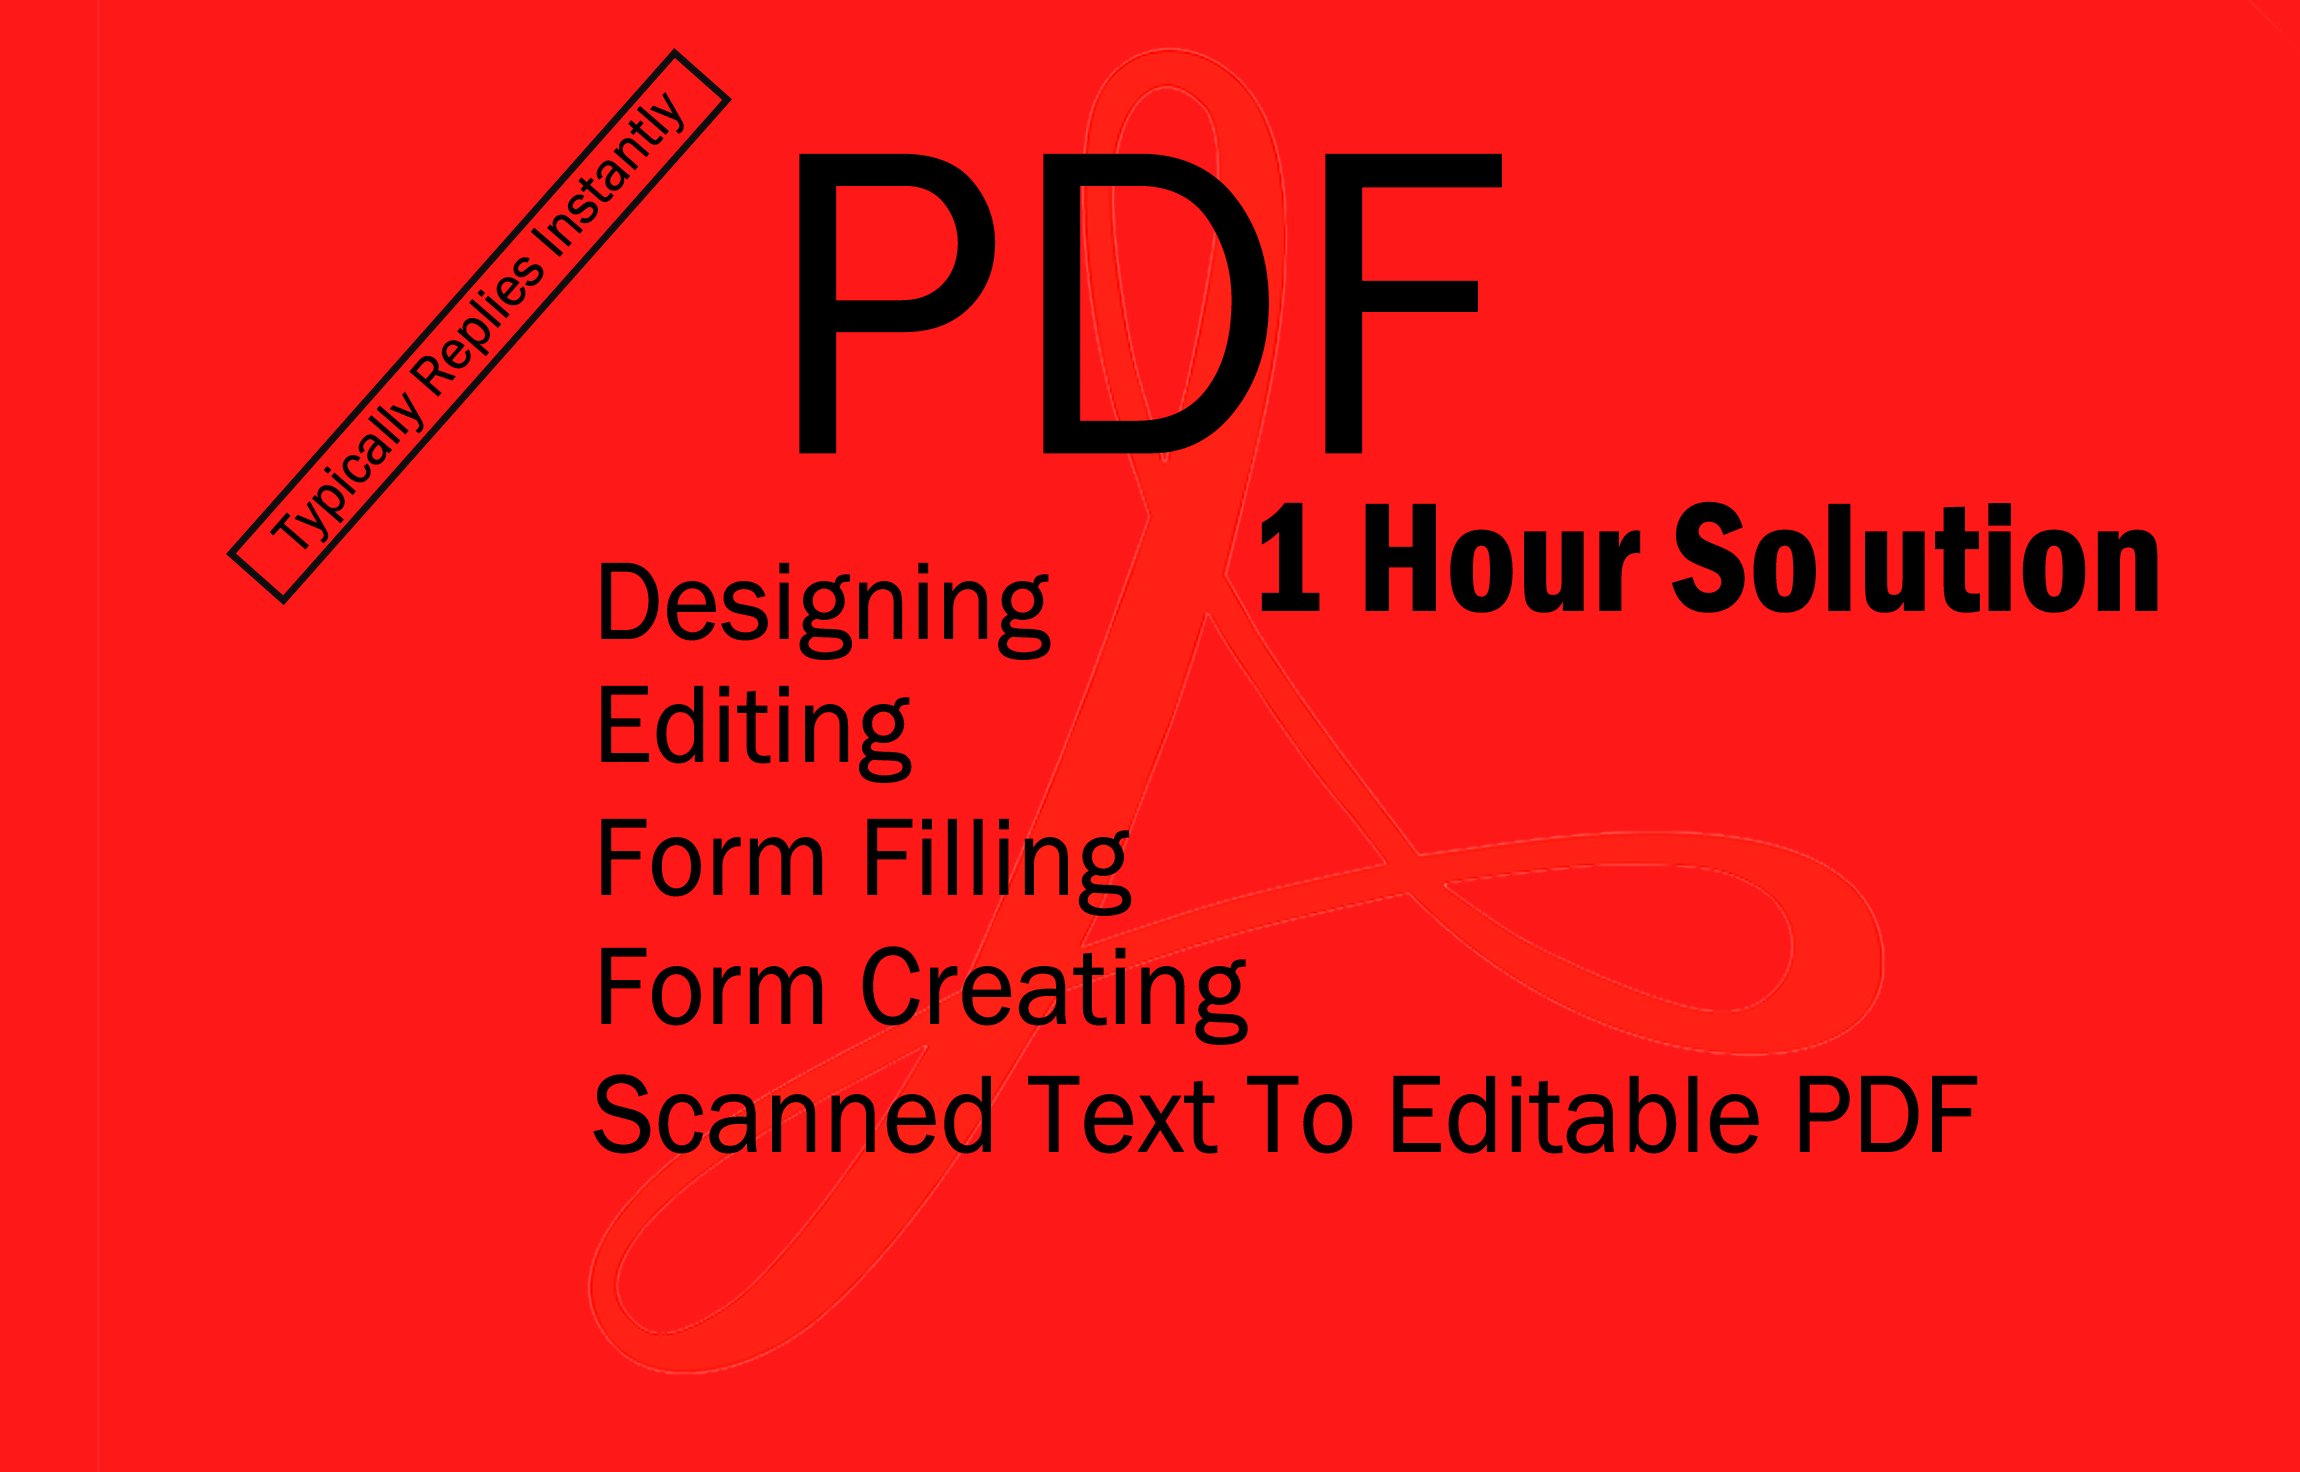 I will create and edit any PDF file or document in 1 hour